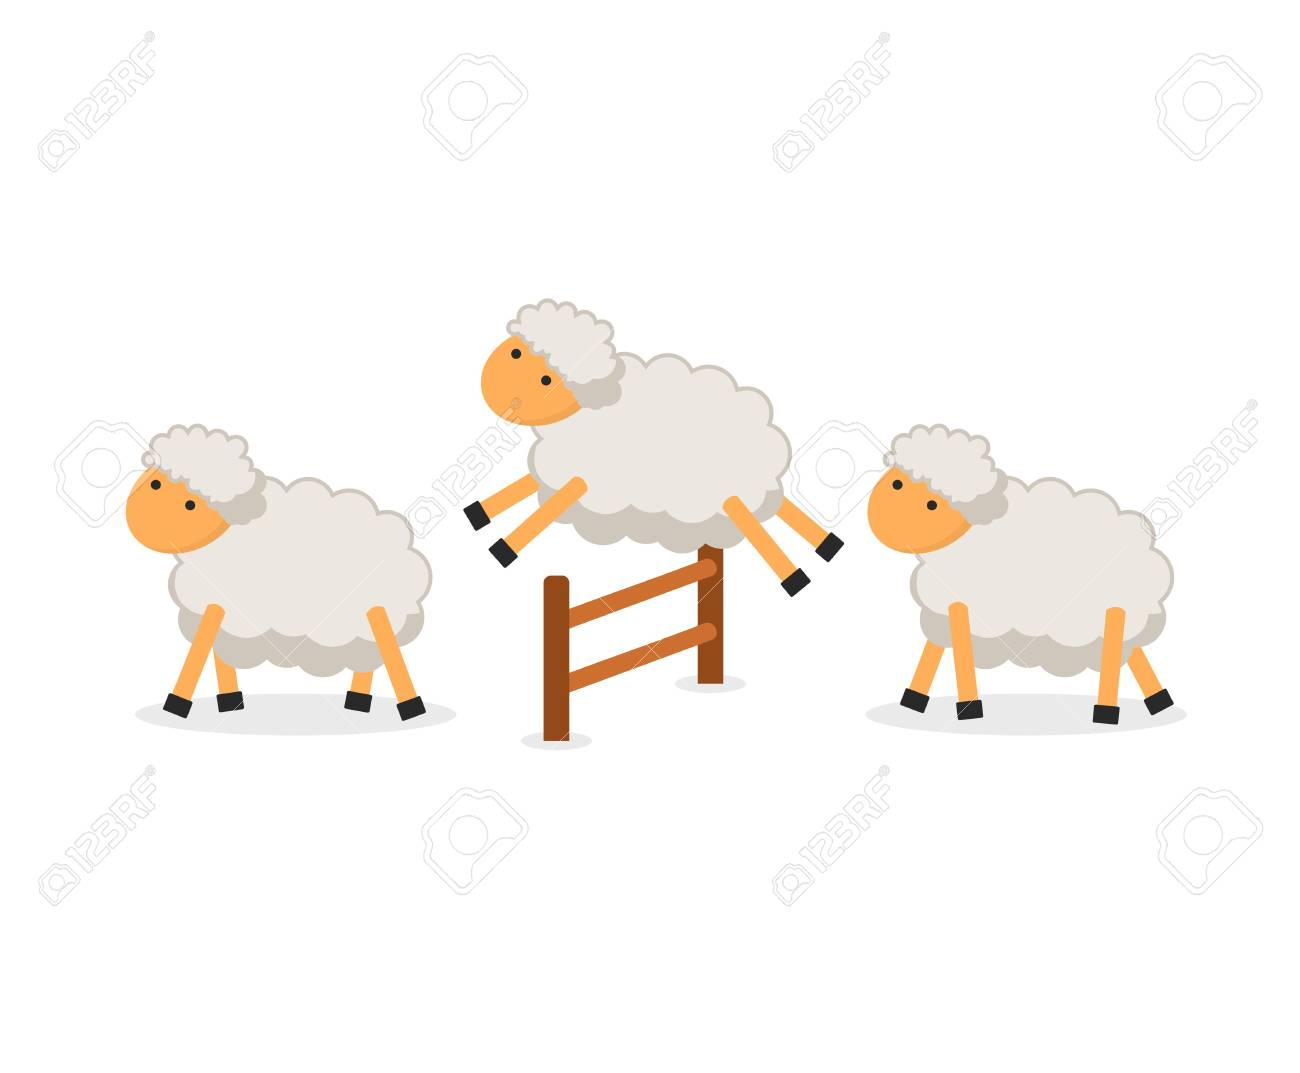 Cute Sheep Jumping Over Fence Isolated On White Background 1300x1073